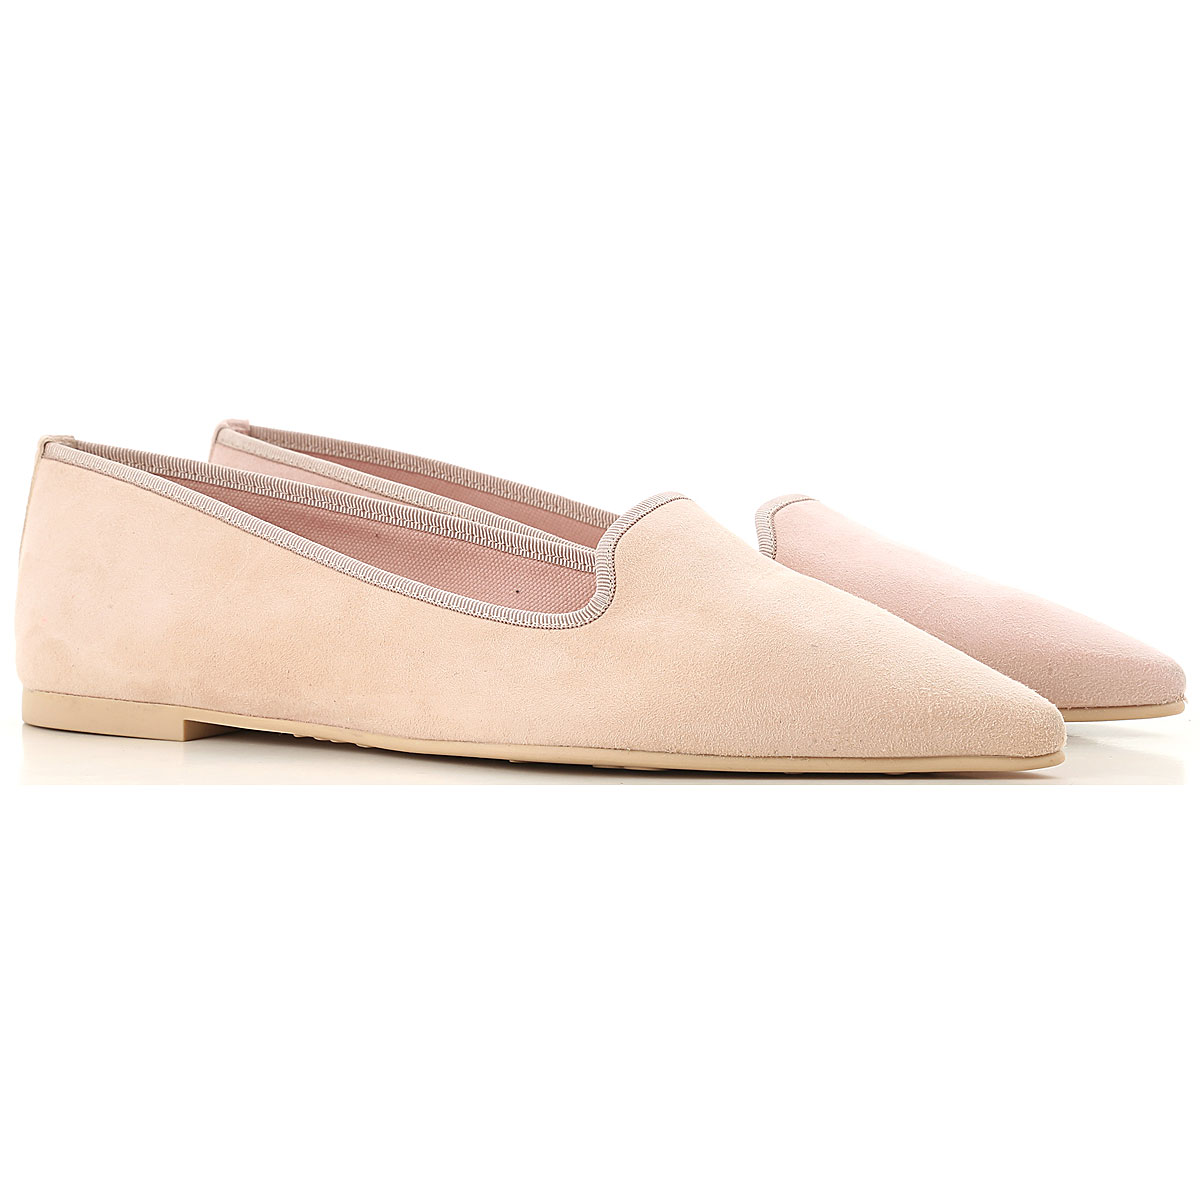 Pretty Ballerinas Ballet Flats Ballerina Shoes for Women On Sale in Outlet, Light Pink, Suede leather, 2019, 7 8